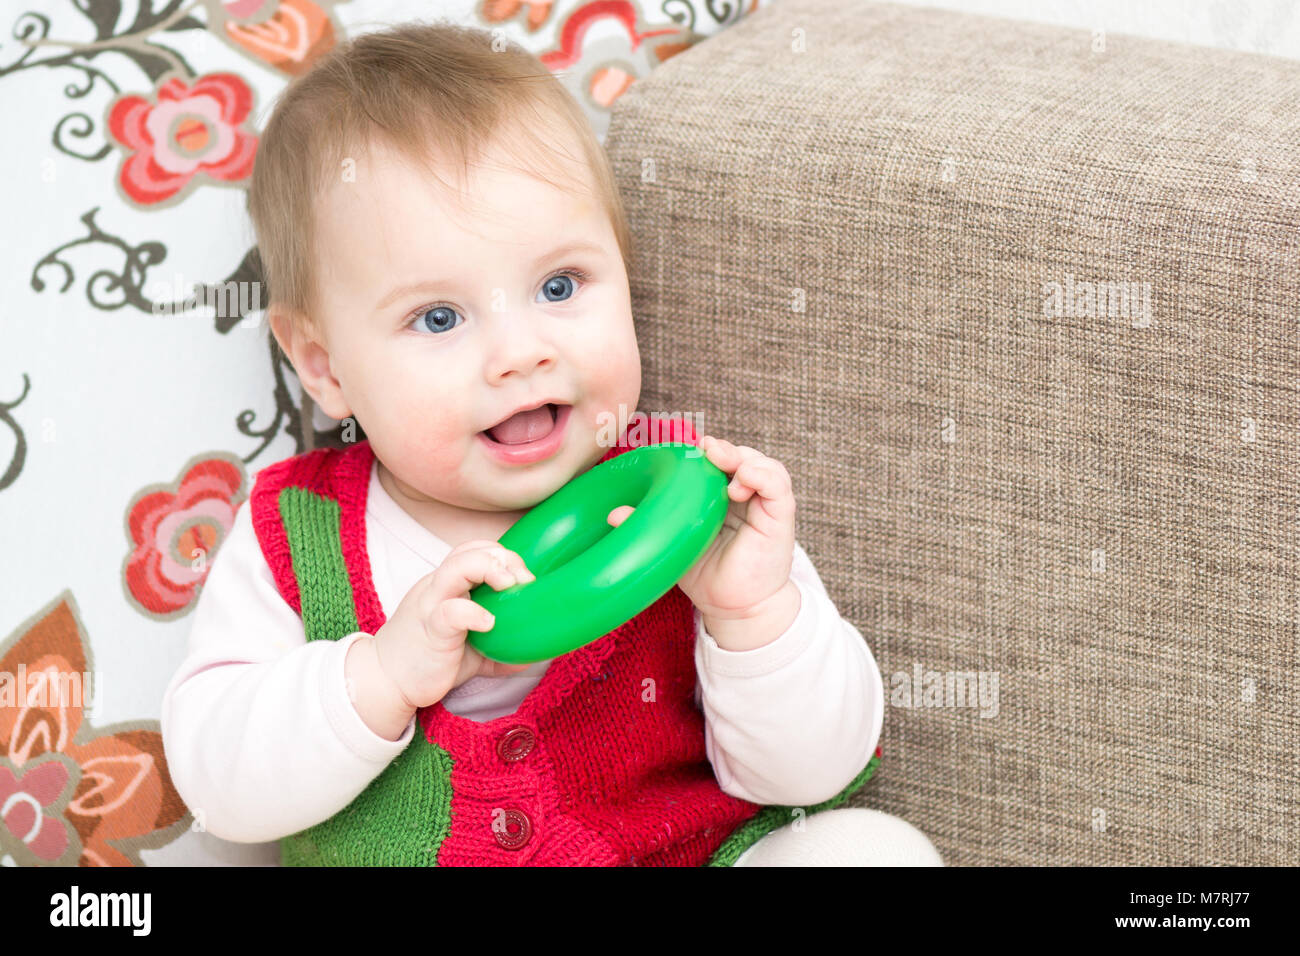 8 months old baby girl playing with pyramid ring - Stock Image